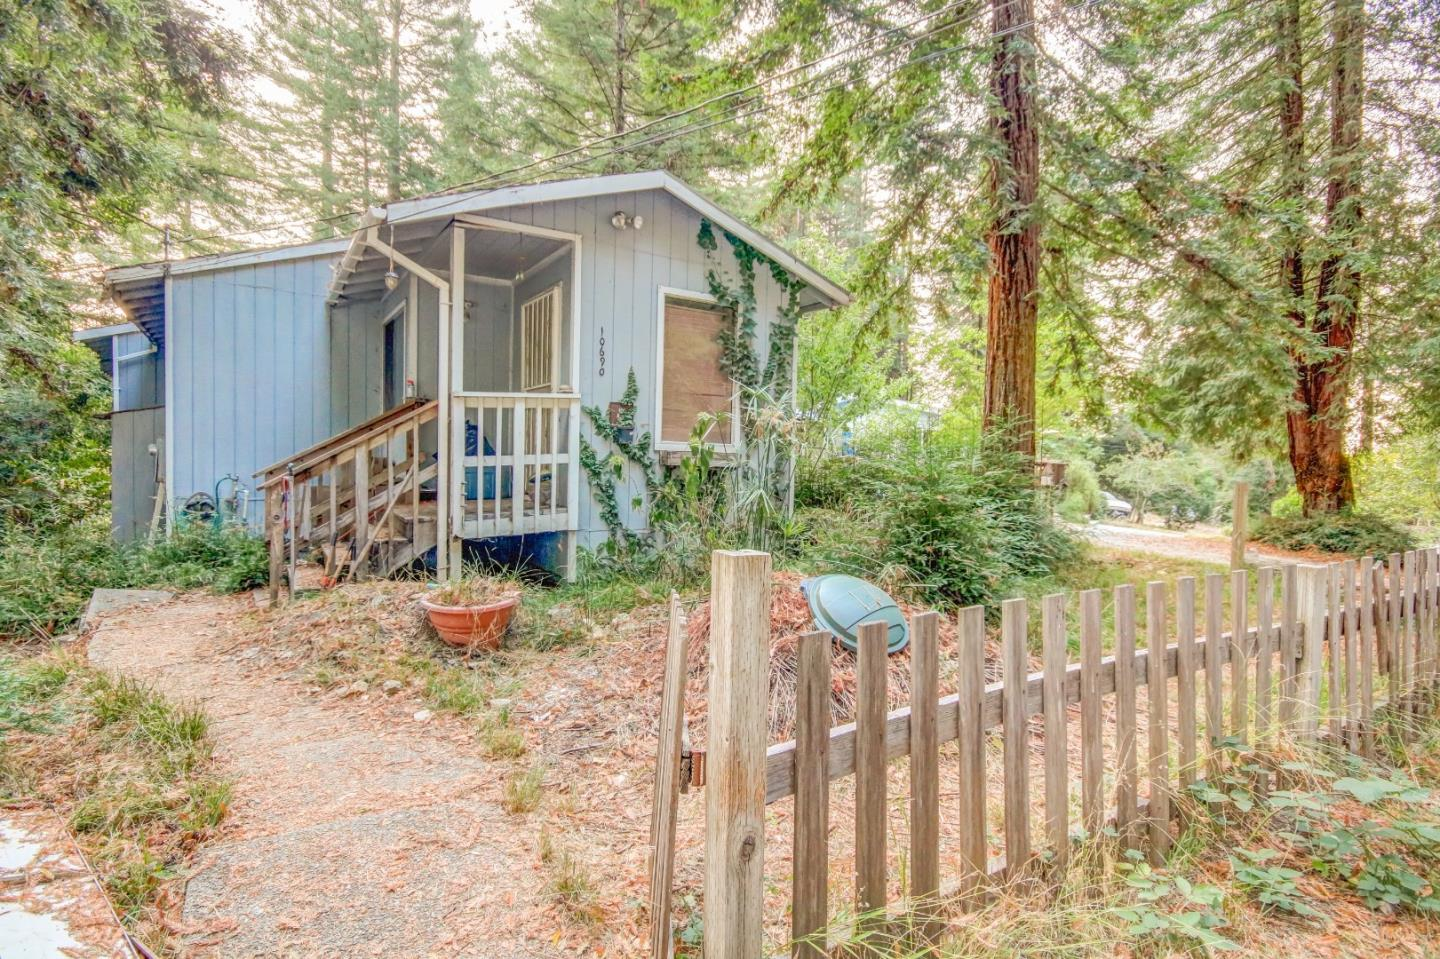 Fixer with a future! 2 bedroom, 1 bath + bonus room - built in 1985 with full perimeter foundation & double wall construction. Hardwood floors, large laundry room & generous sub-area for additional storage needs. Perfect opportunity for sweat equity. BRAND NEW SEPTIC TANK!